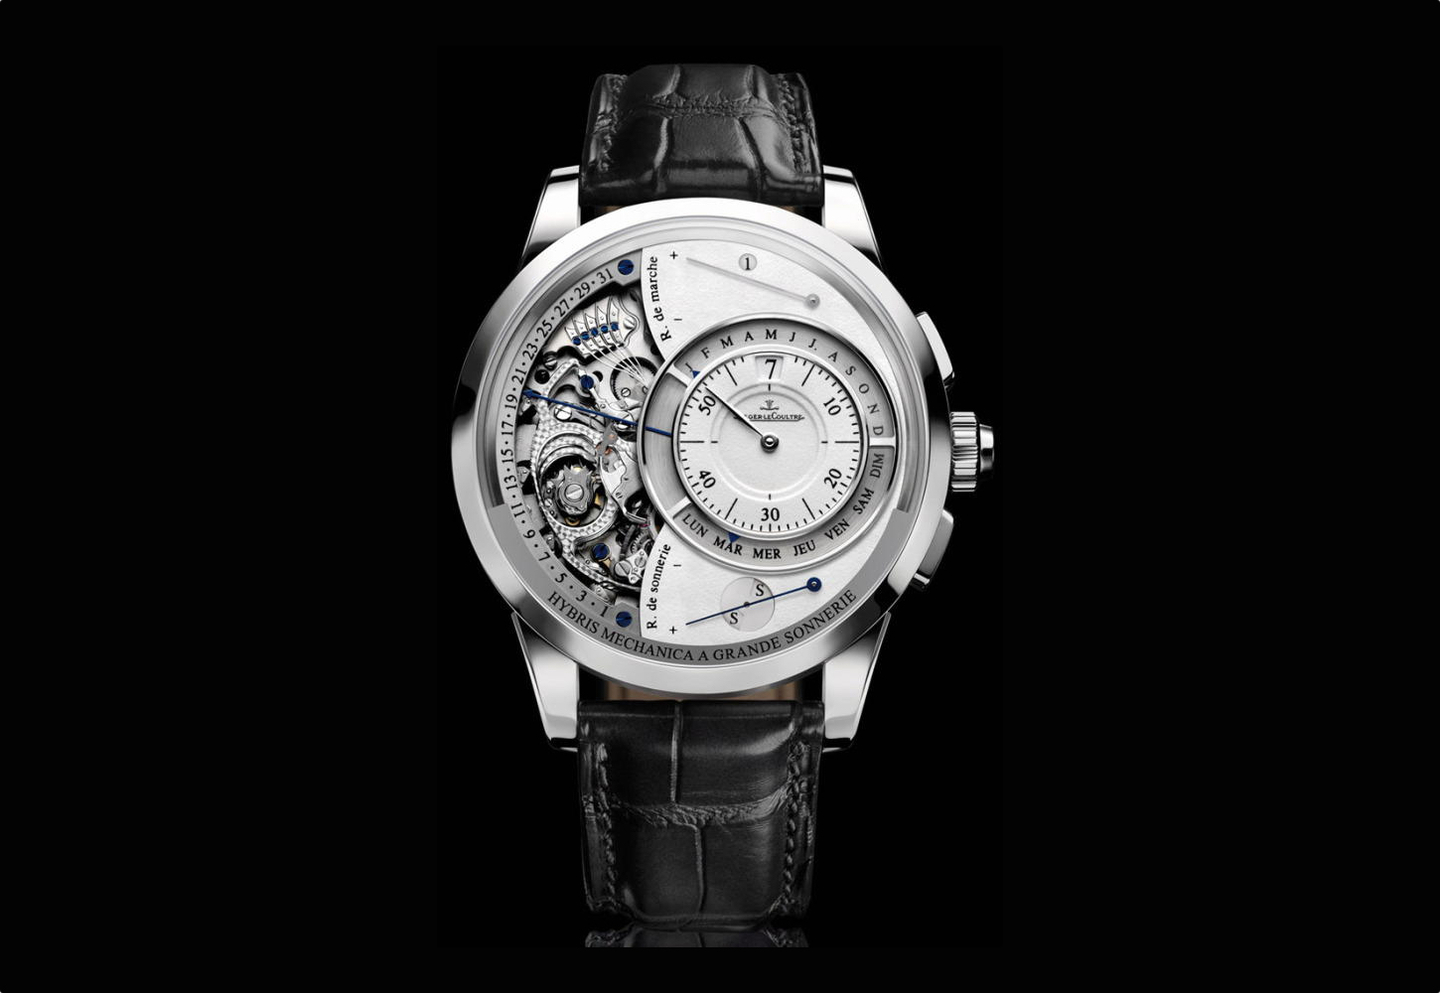 Hybris mechanica grande sonnerie professional watches for Grande sonnerie